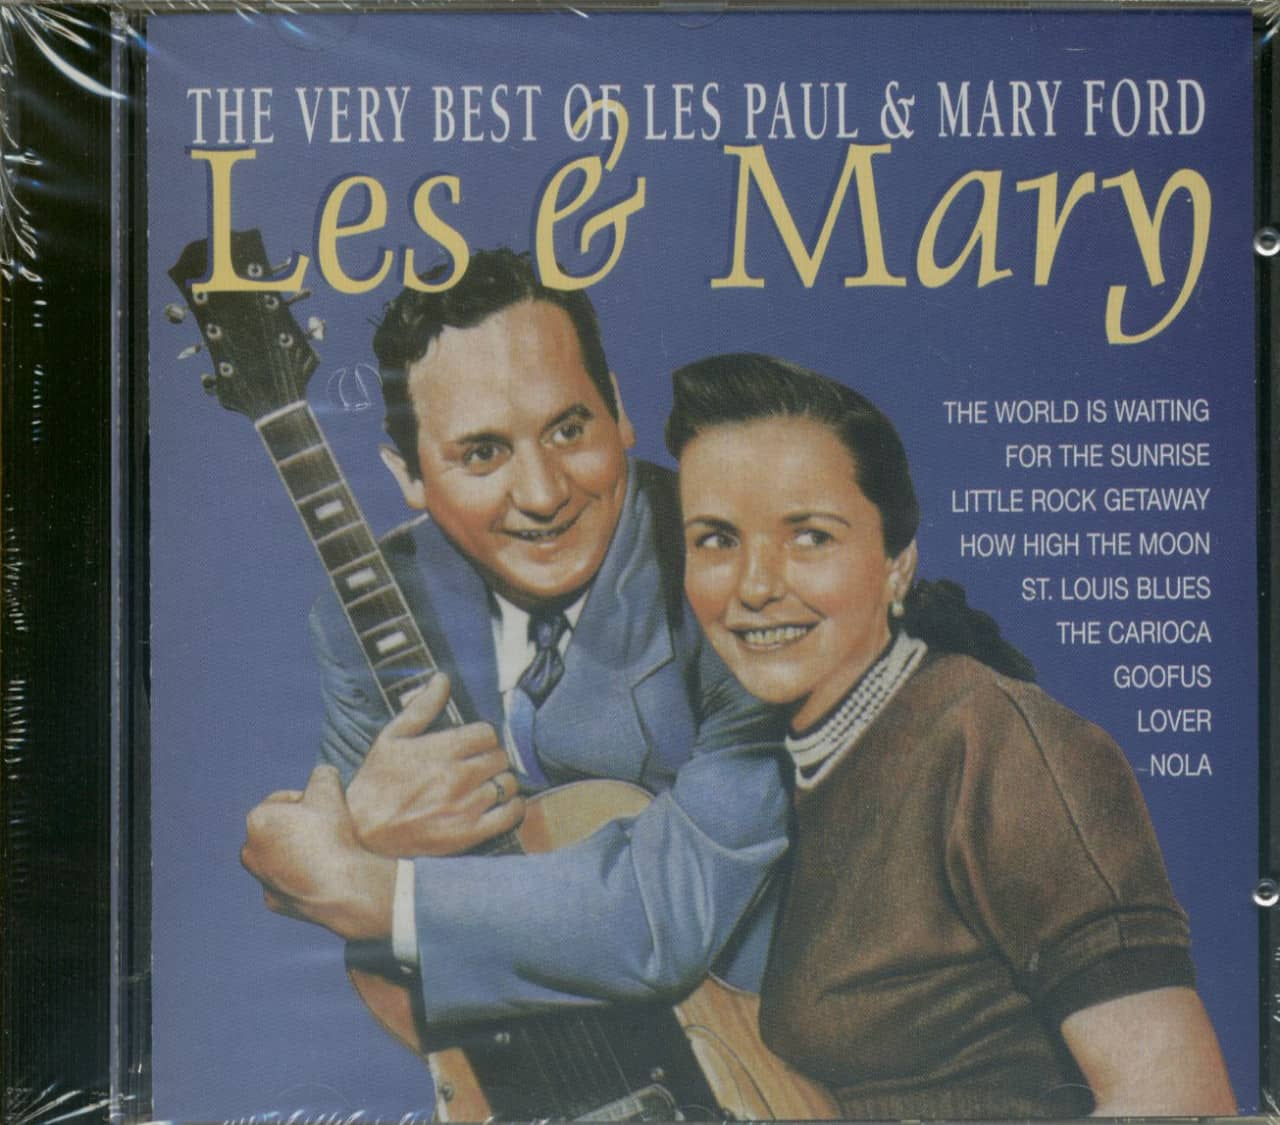 Les Paul & Mary Ford - Very Best Of Les Paul & Mary Ford (CD)